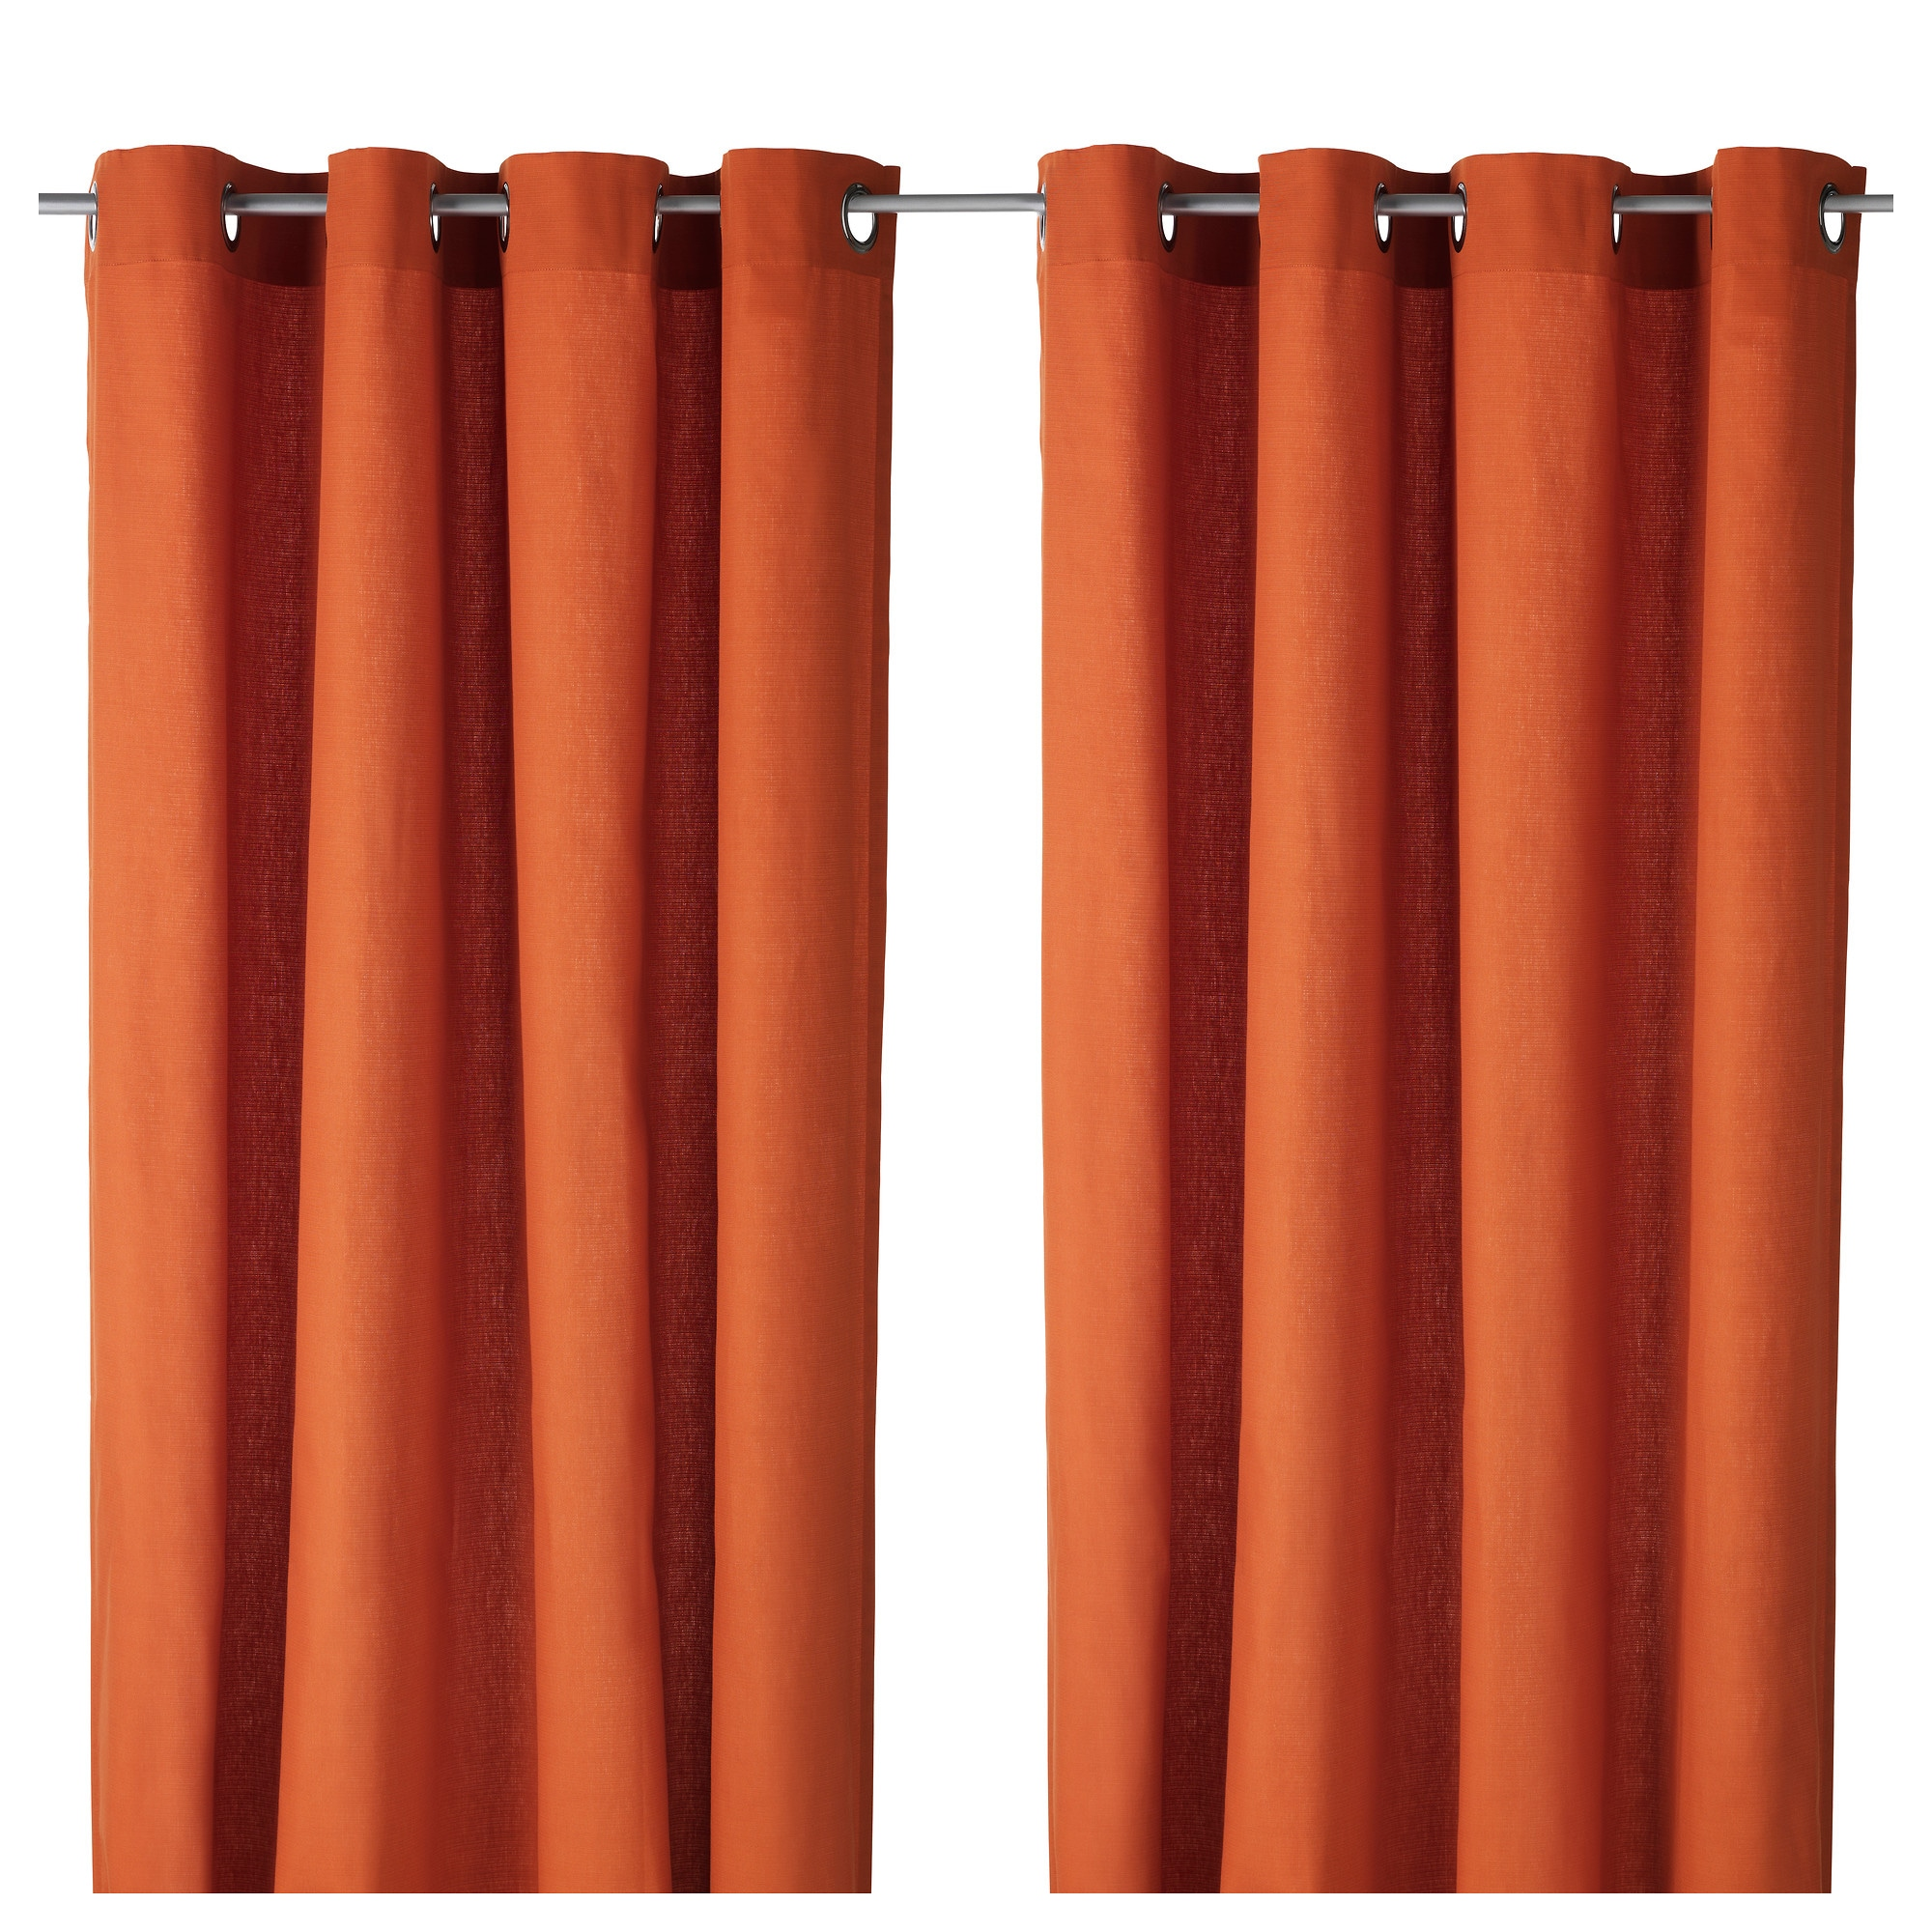 Orange color block curtains - Mariam Curtains 1 Pair Orange Length 98 Width 57 Weight